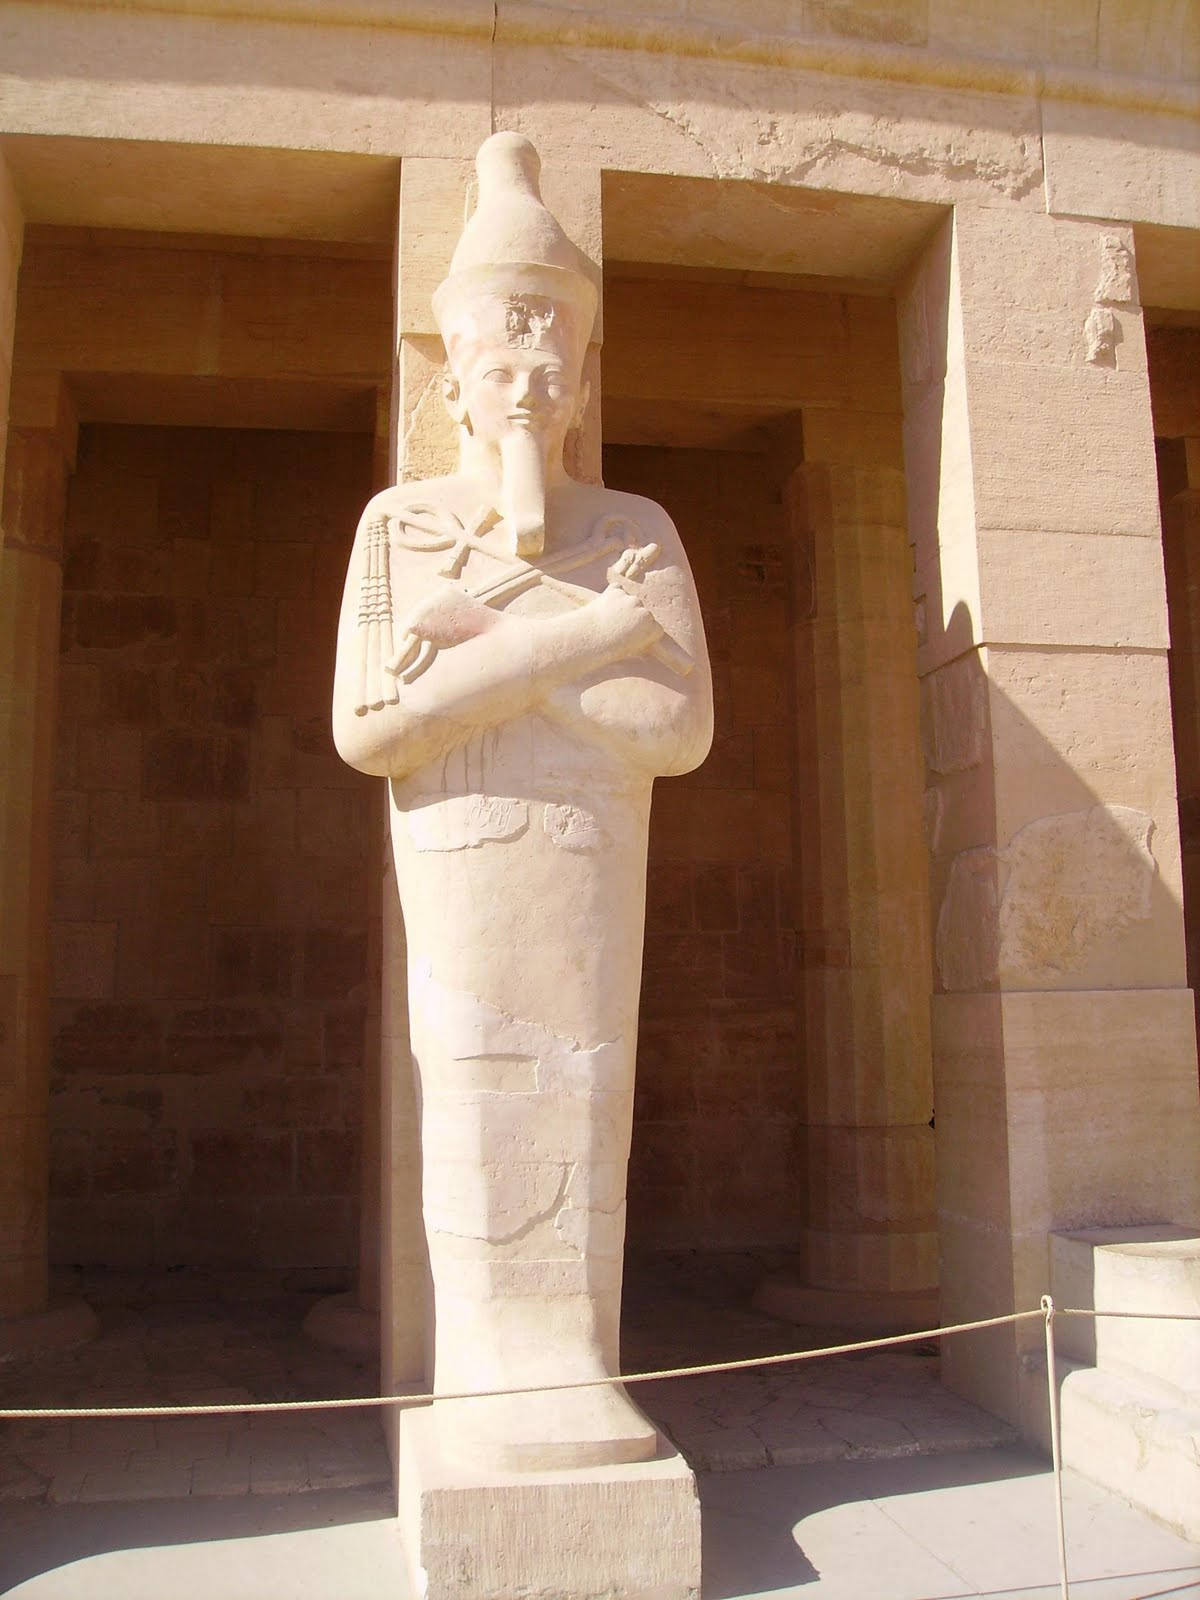 hatshepsut legacy What was queen hatshepsut's legacy perhaps themost important part of hatshepsut's legacy was her creation of aflourishing and stable egypt through her highly successful foreignpolicy her military campaigns in both the north and the southaugmented the extent of egypt's influence on a vaster scale.